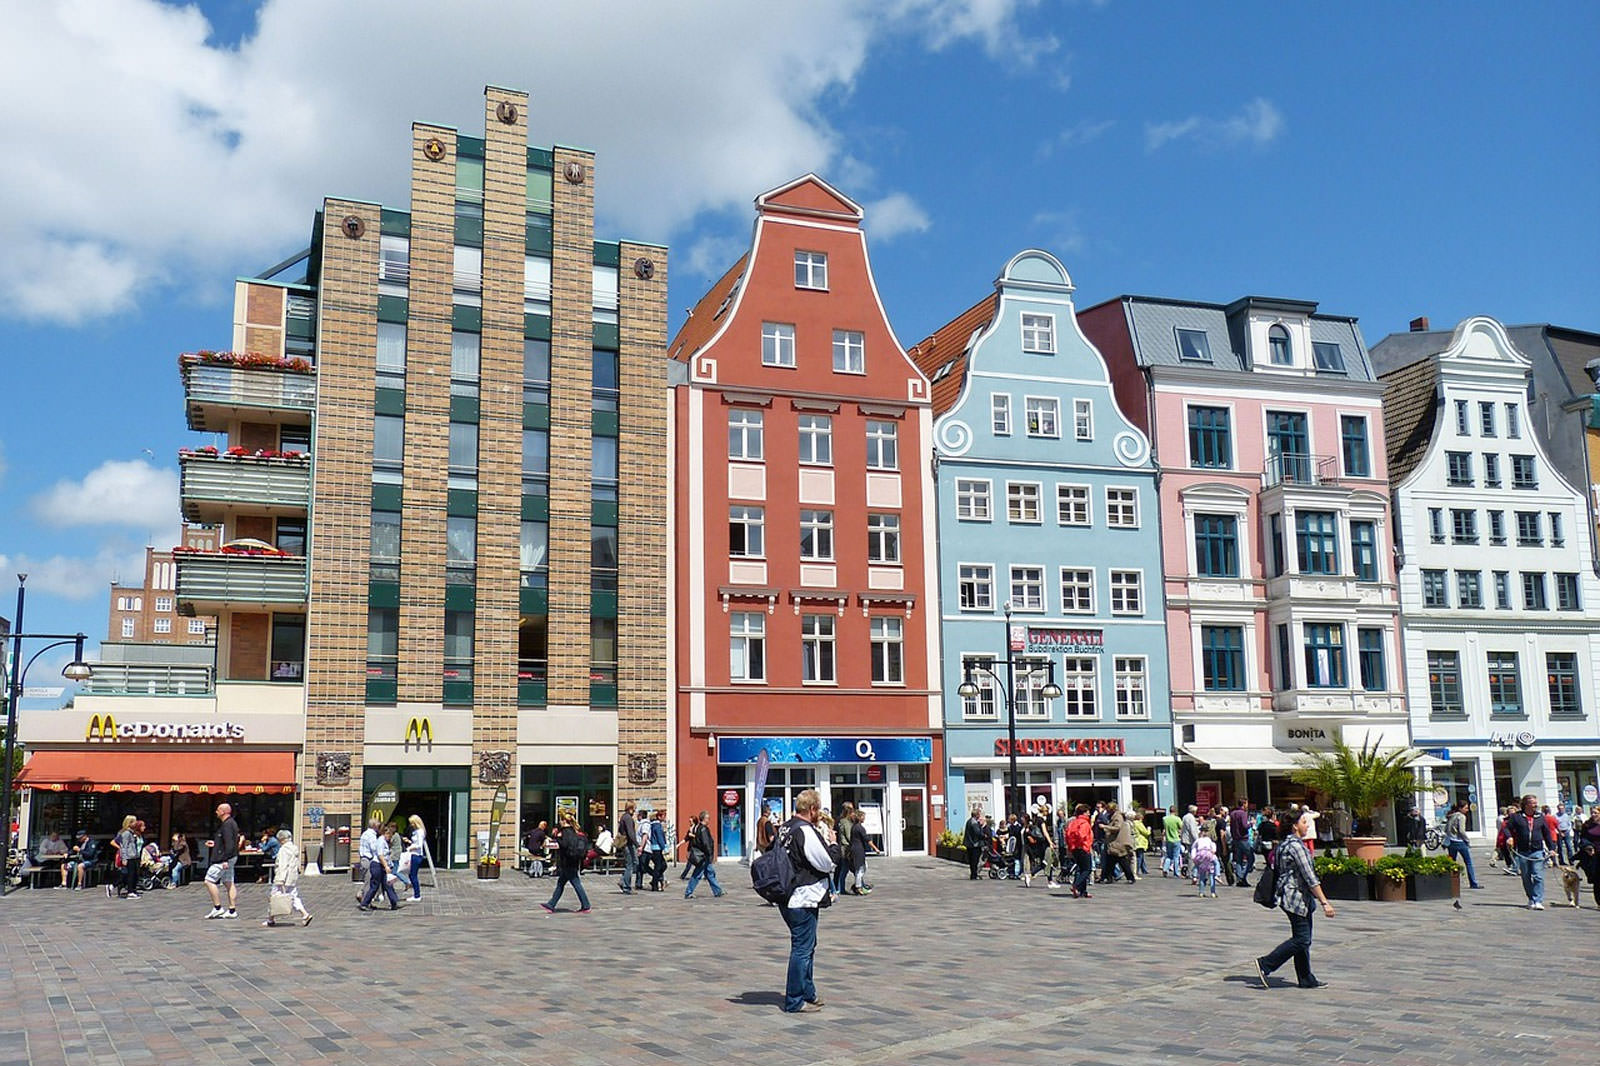 Rostock Shopping 10 Things To Do In Rostock In A Day What Is Rostock Most Famous For